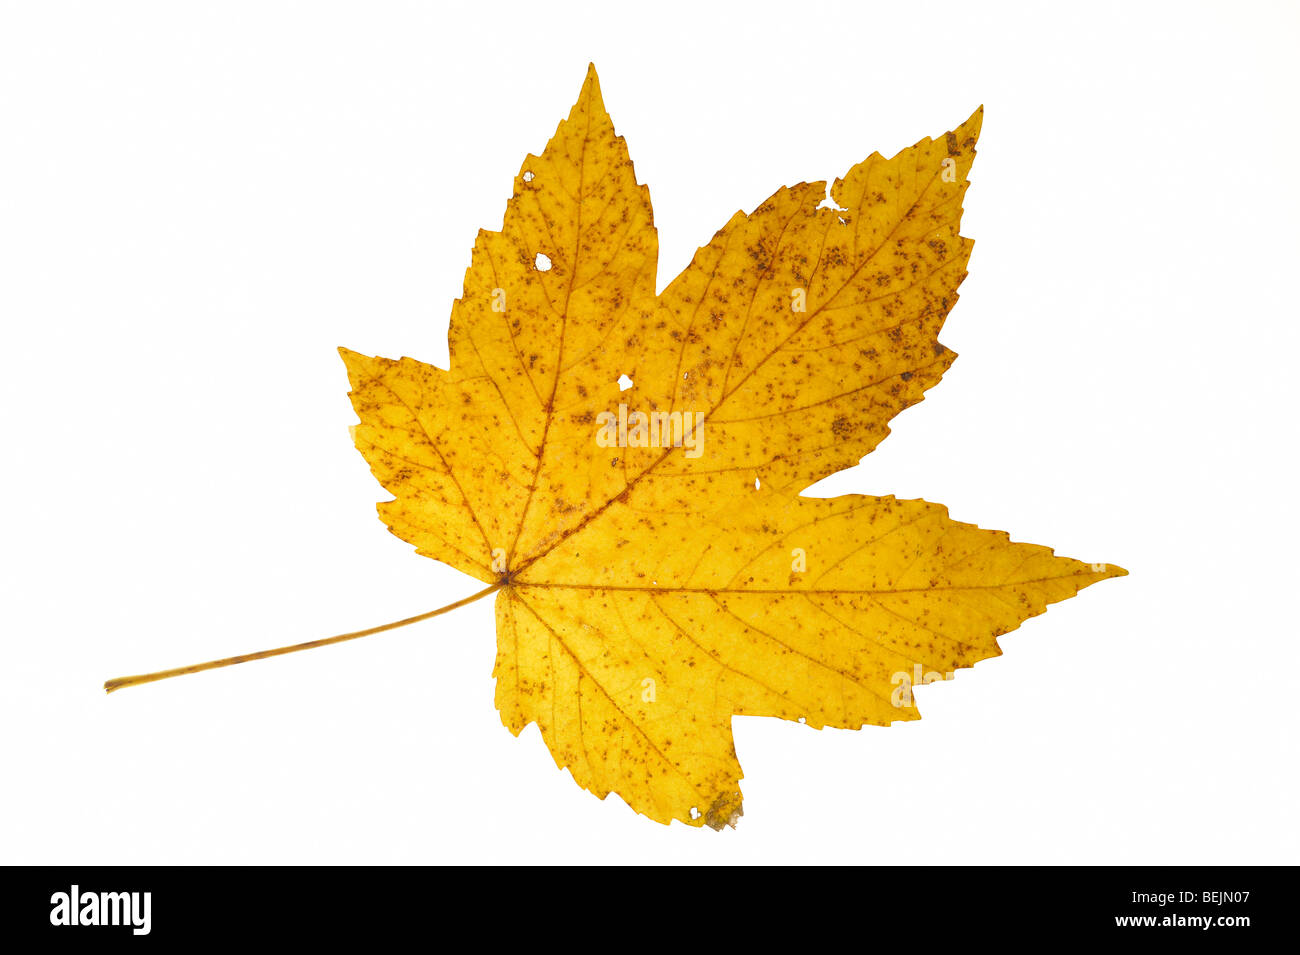 Sycamore maple (Acer pseudoplatanus) leaf in autumn colours on white background Stock Photo